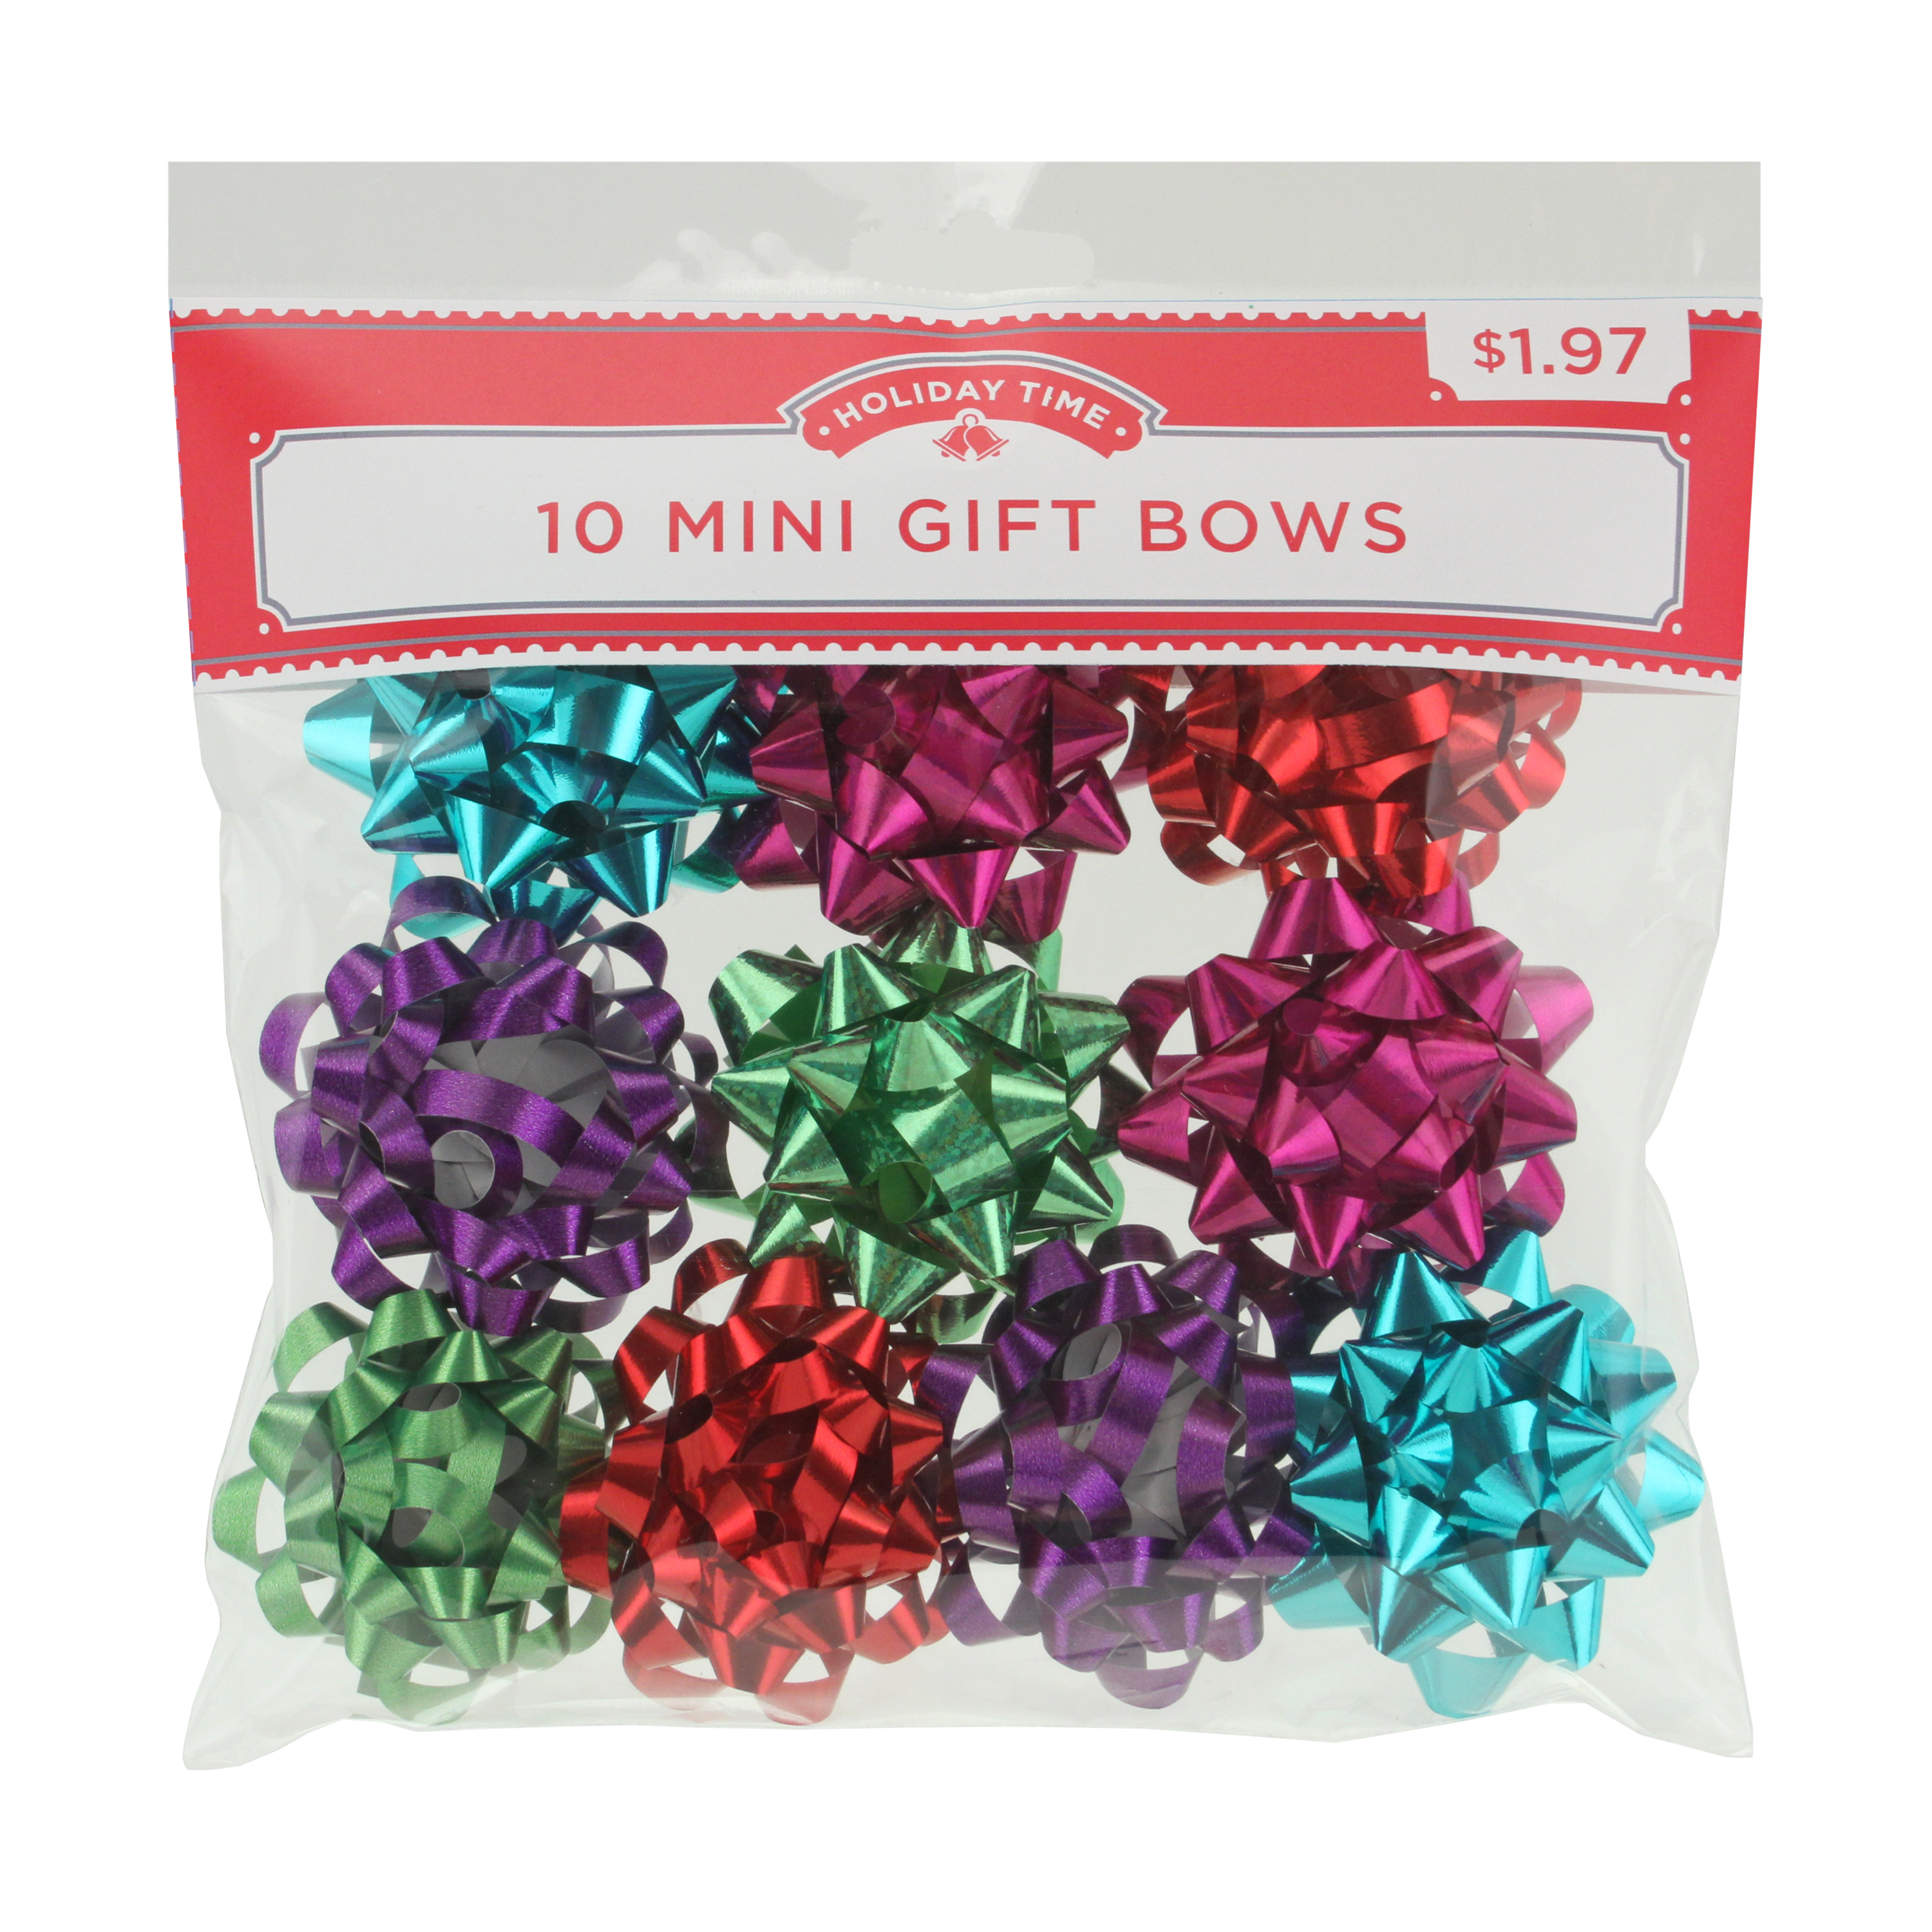 10 COUNT GIFT BOW ASSORTMENT - BRIGHTS